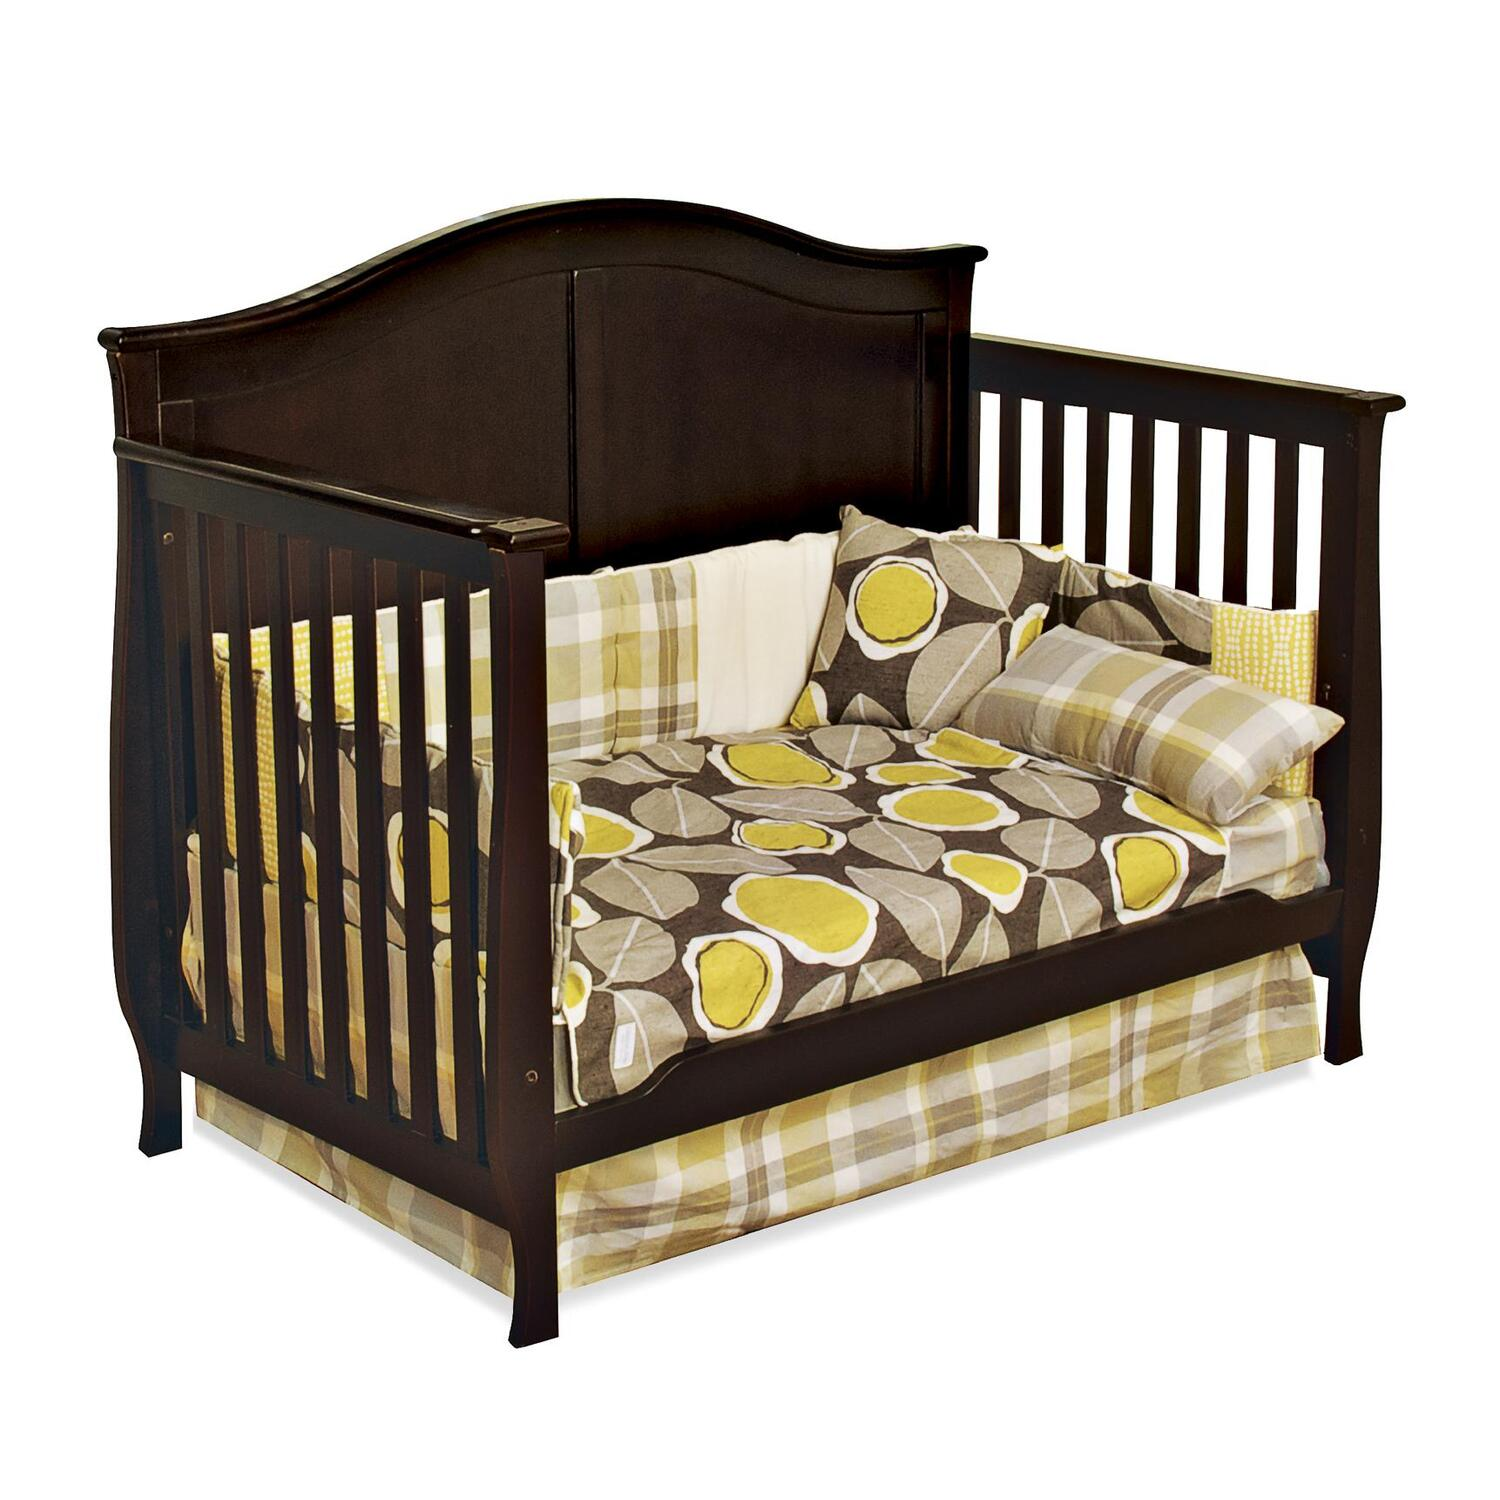 child craft camden 4 in 1 convertible crib jamocha ojcommerce. Black Bedroom Furniture Sets. Home Design Ideas